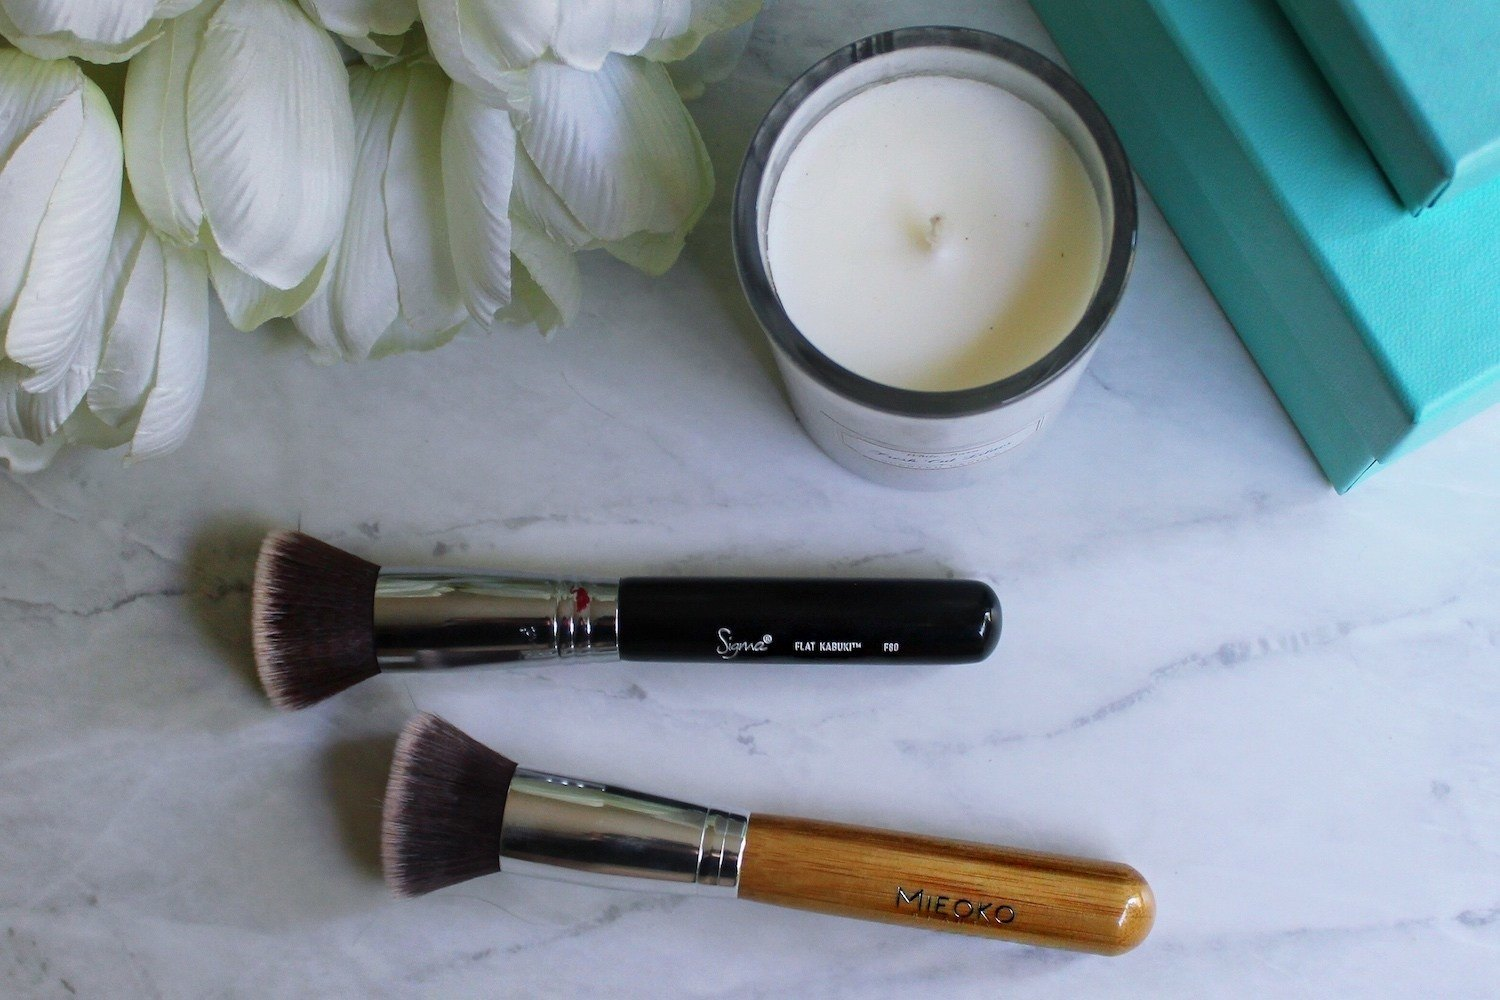 Mieoko Foundation Brush Review